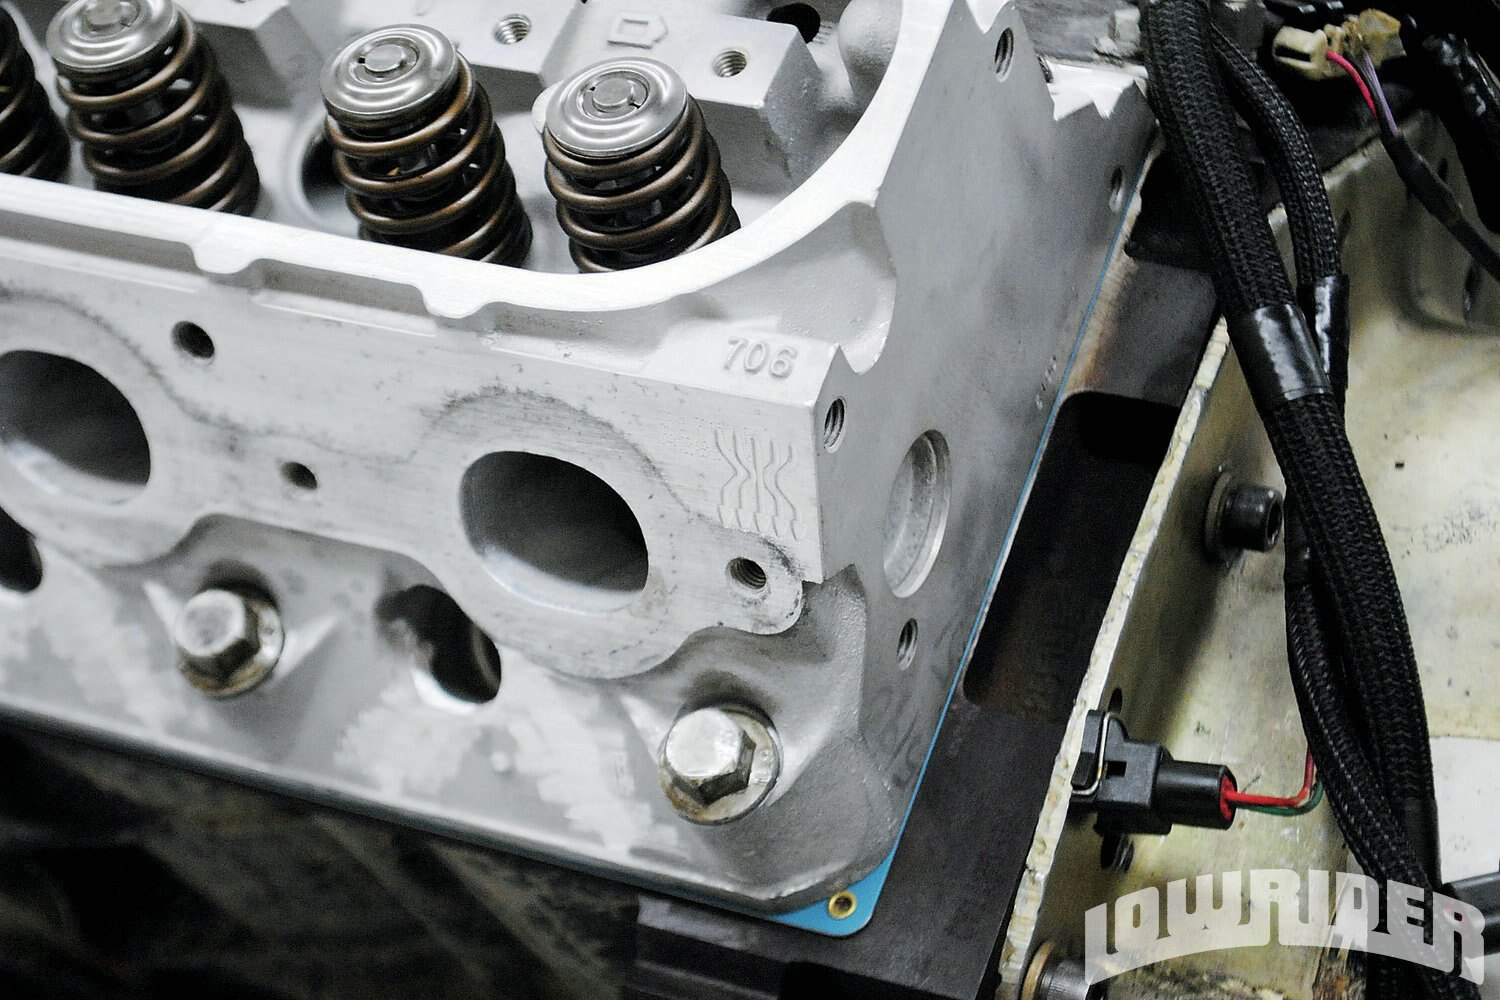 <strong>6</strong>. Though the 4.8L and 5.3L shared the same heads, we shipped out a set of 706 head castings to Total Engine Airflow for porting. The TEA heads offered serious flow improvements over the stock castings and were enough to support 600-plus hp.